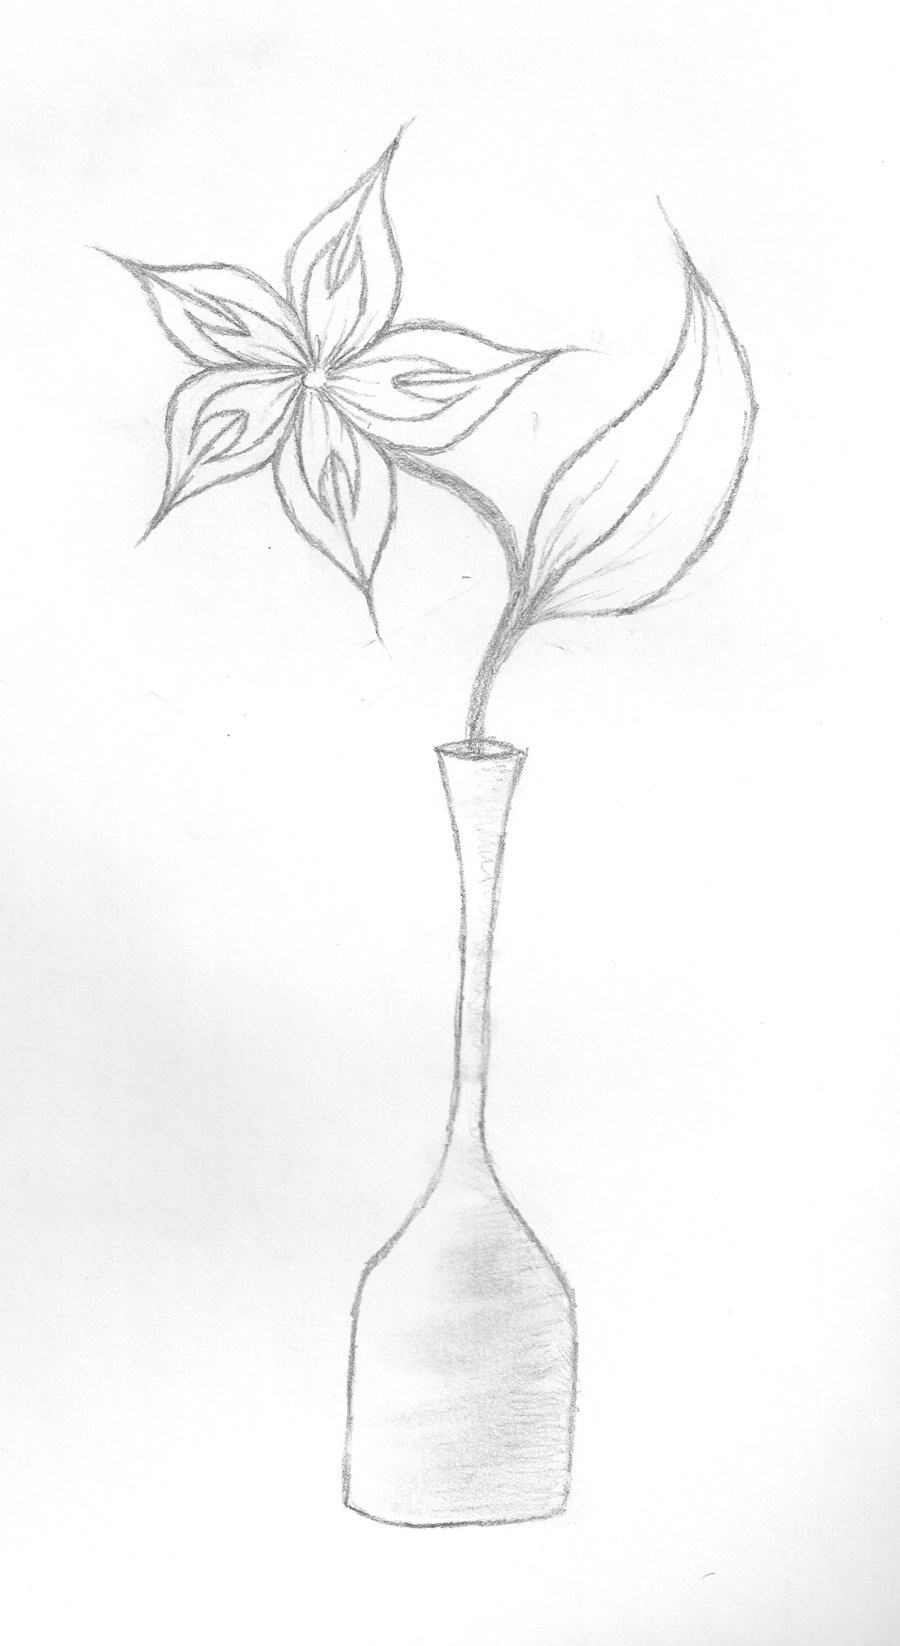 still life vase of flowers of flower vase image drawing flowers healthy throughout flowers in vase drawing at getdrawings free for personal use